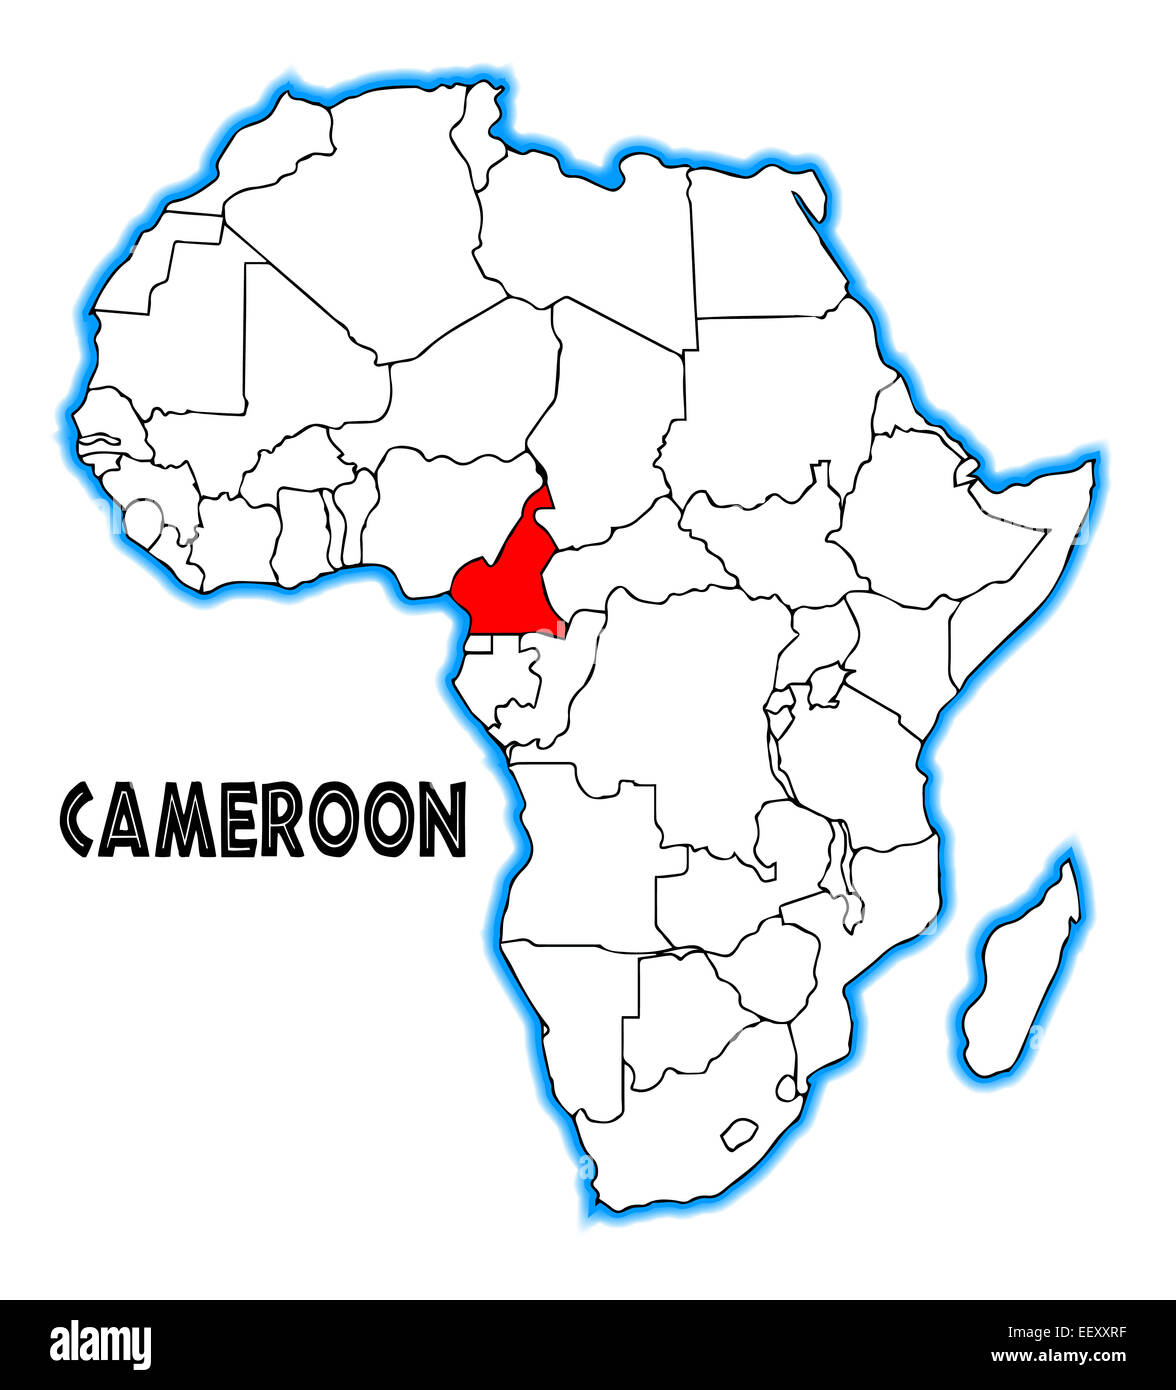 Map Of Africa Cameroon.Cameroon Outline Inset Into A Map Of Africa Over A White